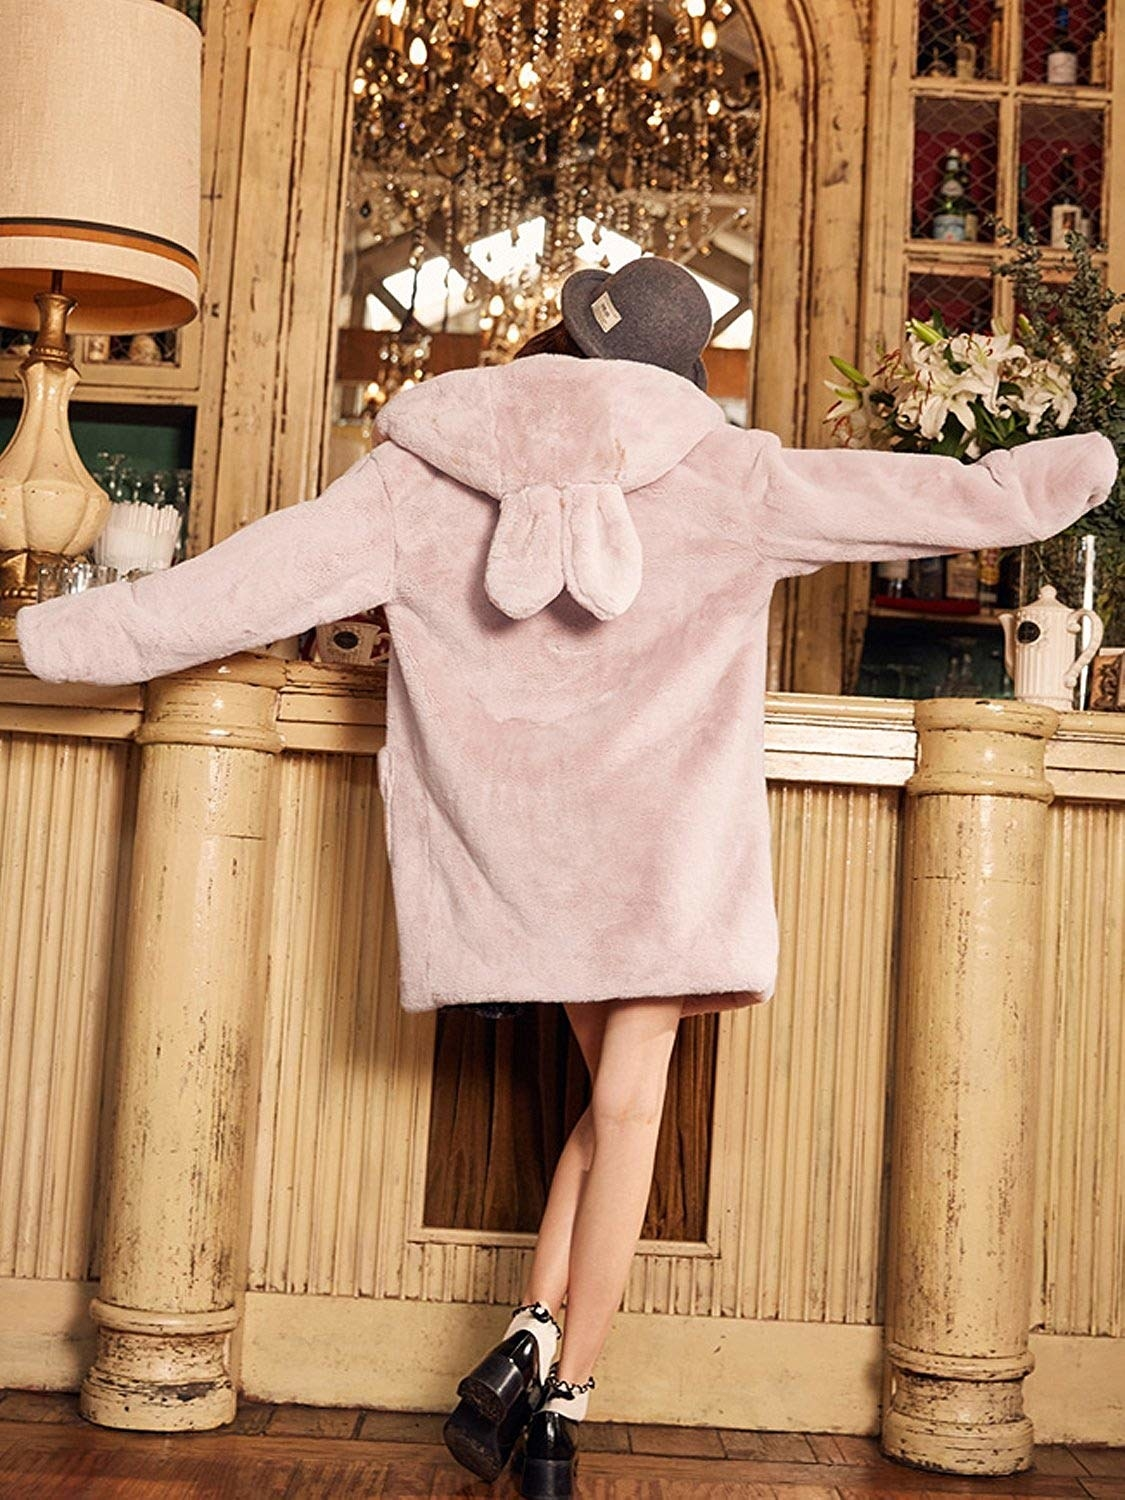 A model showing the back of the pink hooded coat with bunny ears